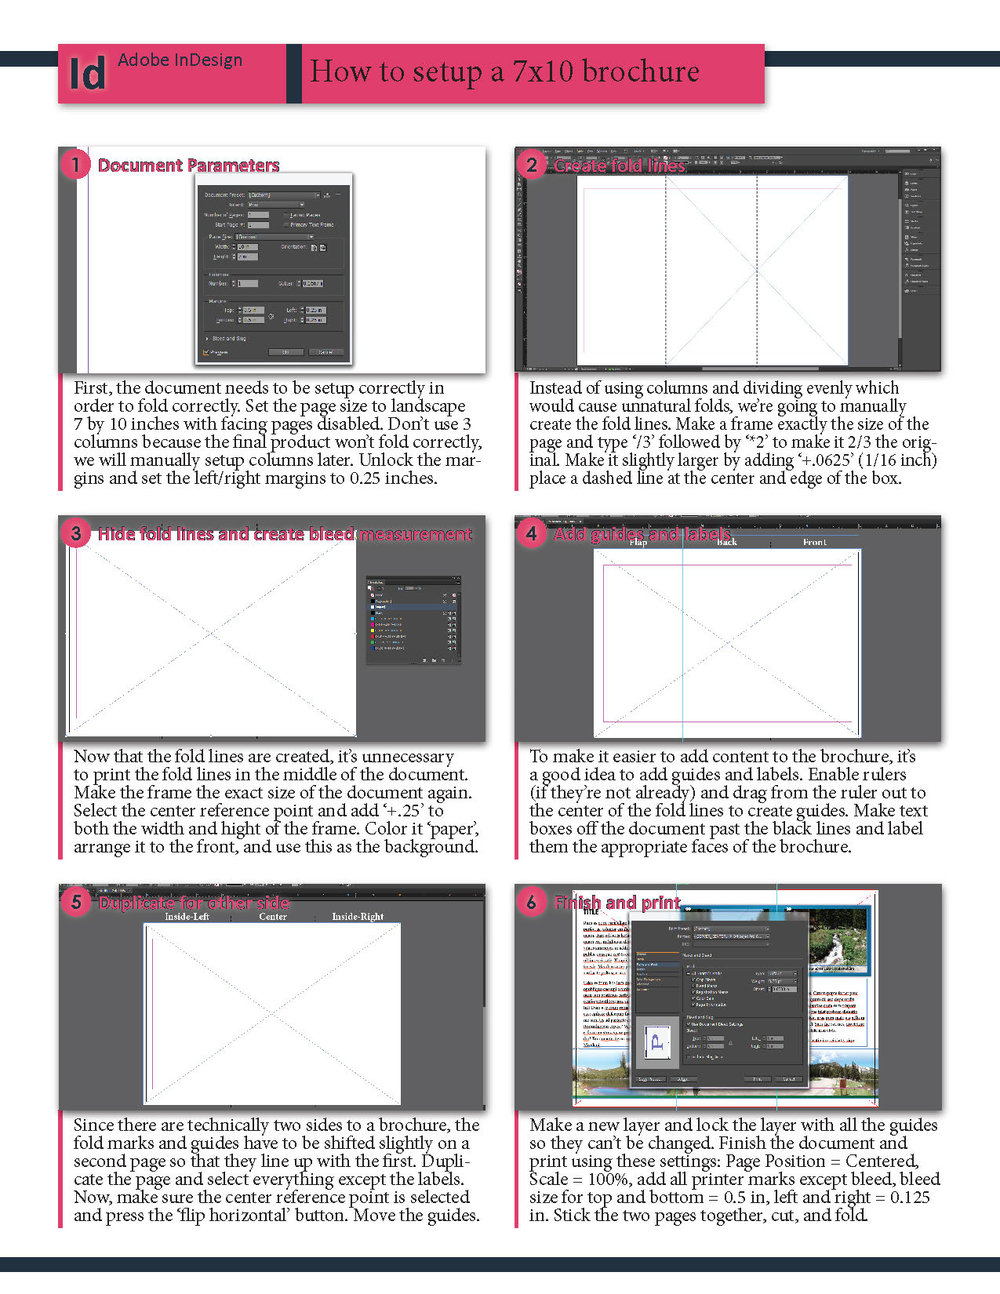 InDesign: Set up a 7x10 brochure